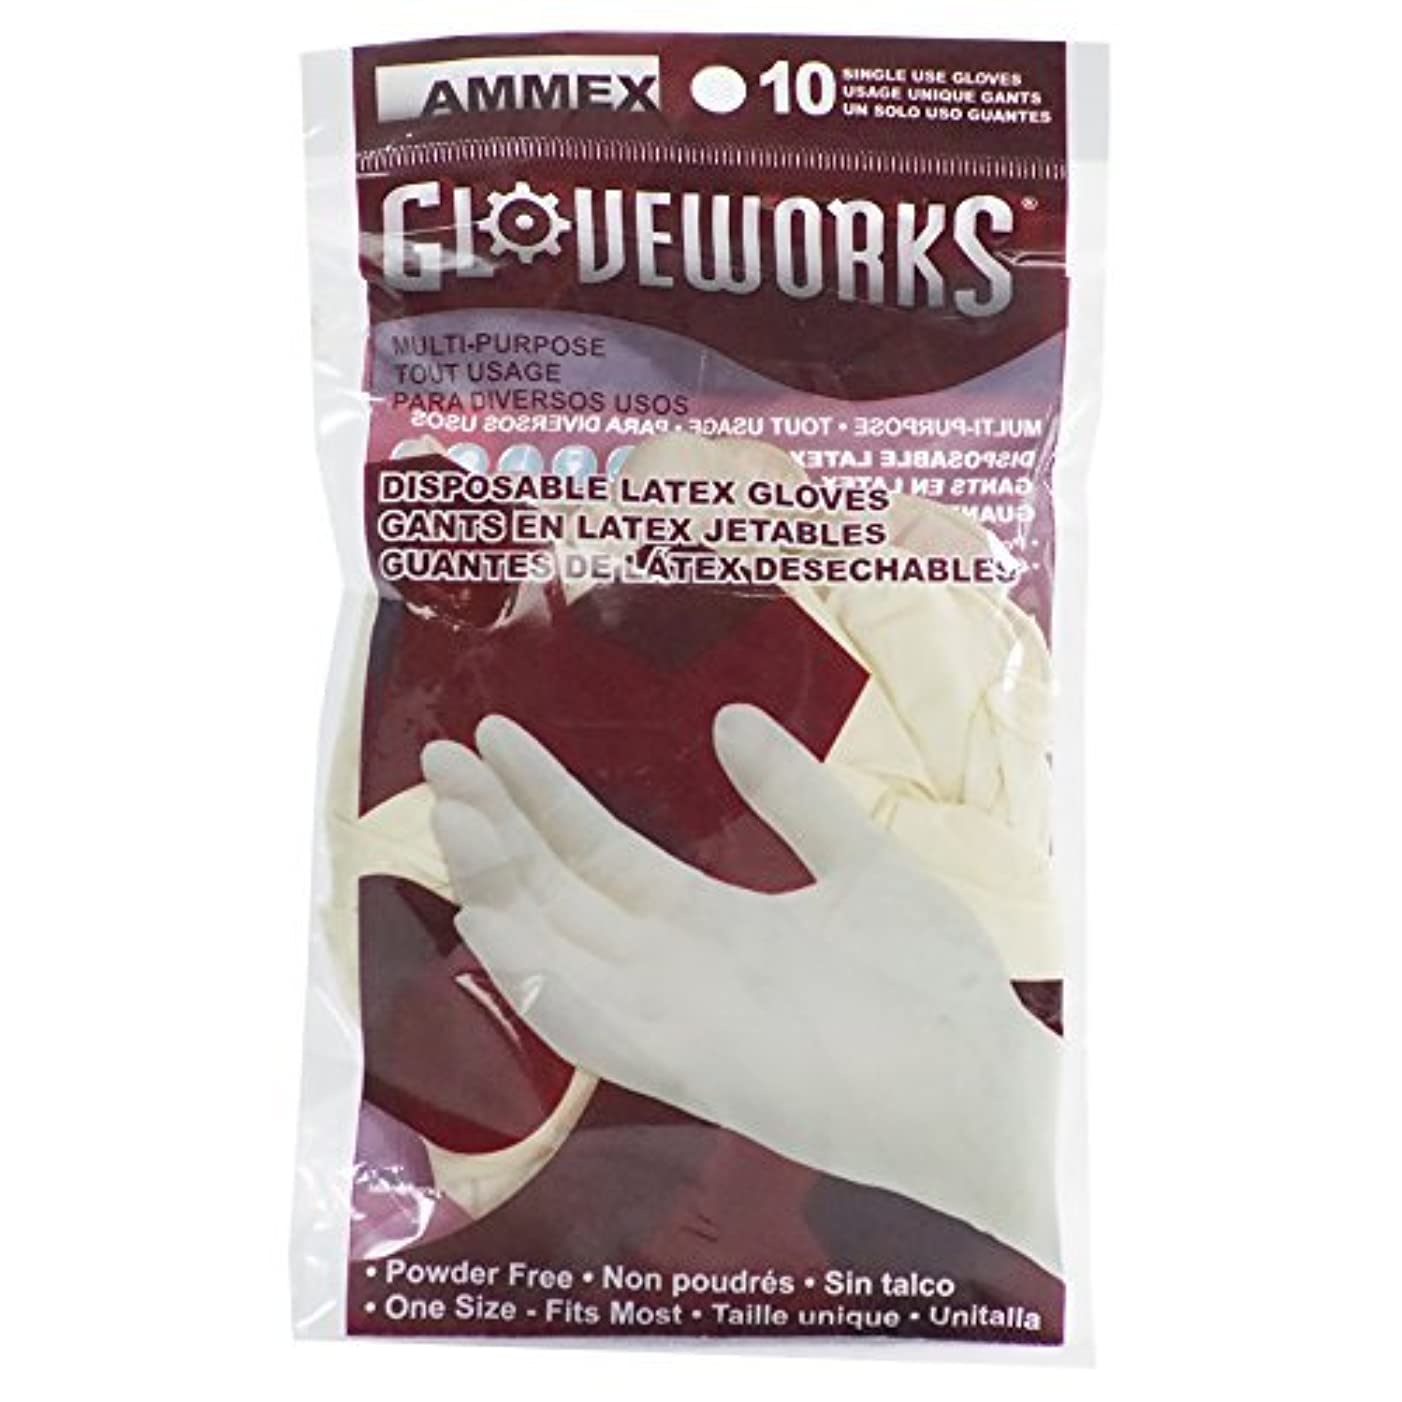 賢明な黒板財団AMMEX - GWL10PK - Latex Gloves - Gloveworks - 10/pack Disposable Powder Free 4 mil Uni-size White (Case of 250...